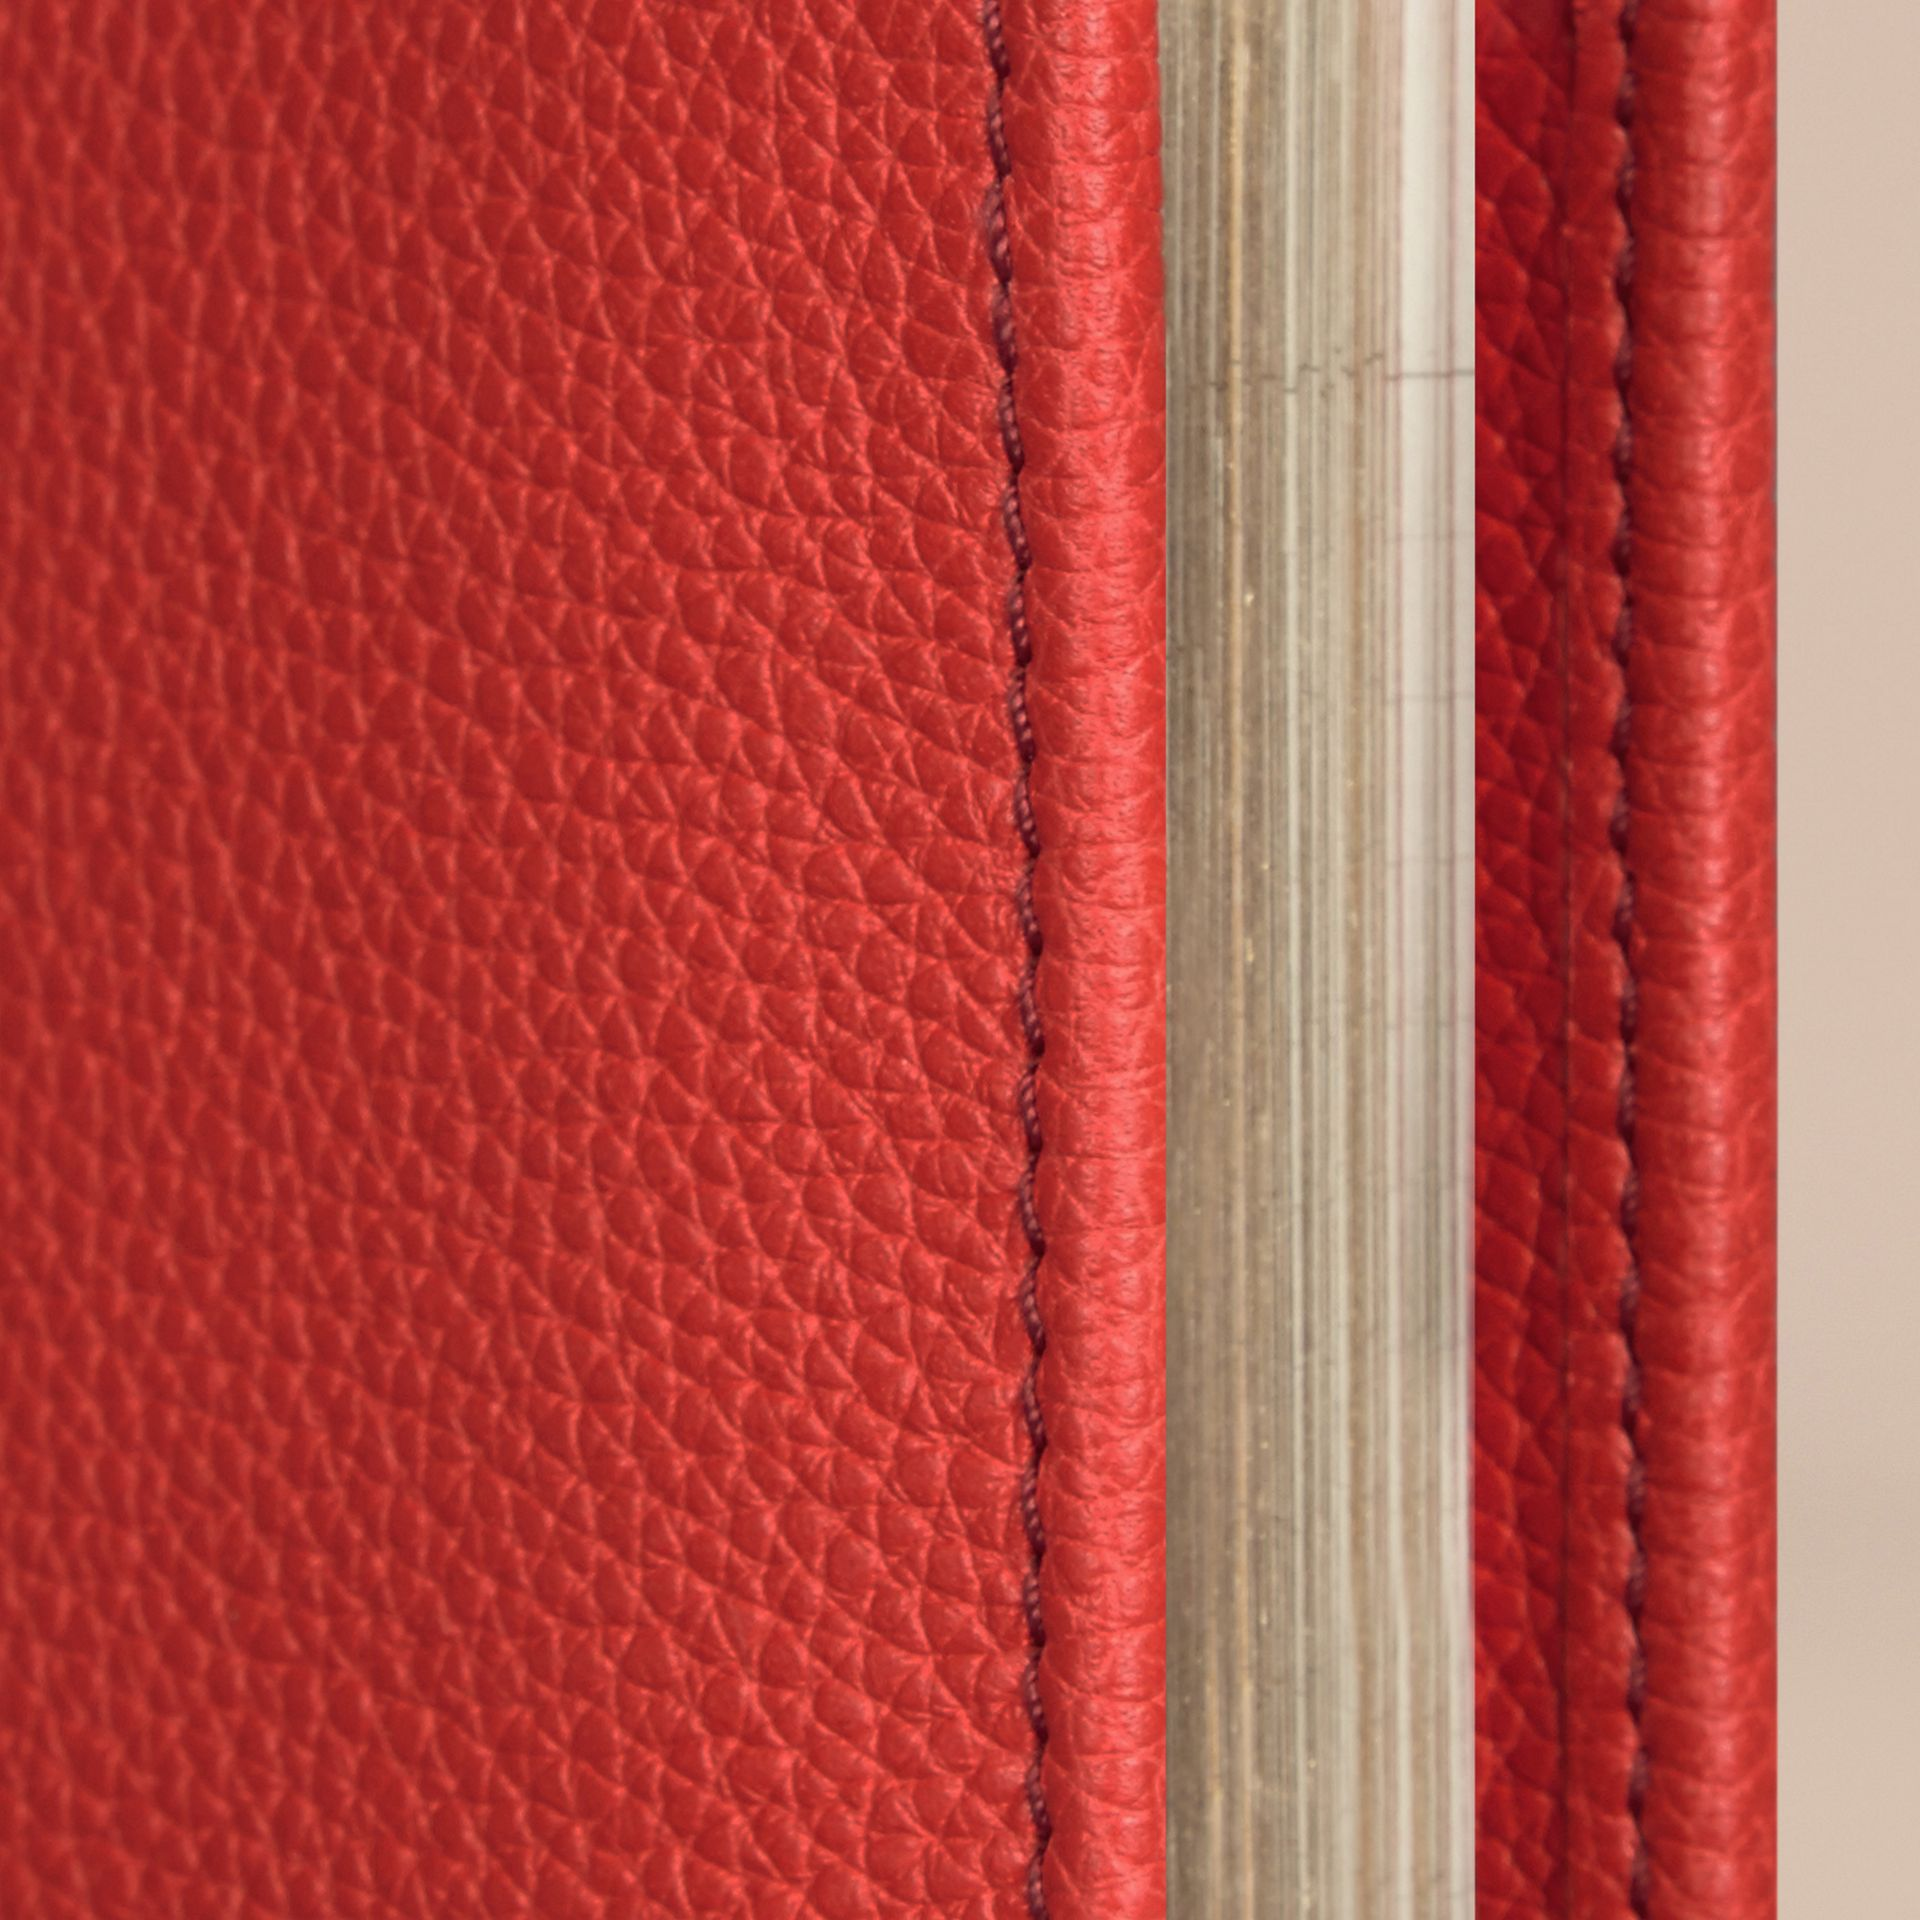 Grainy Leather 18 Month 2016/17 A5 Diary Orange Red - gallery image 2